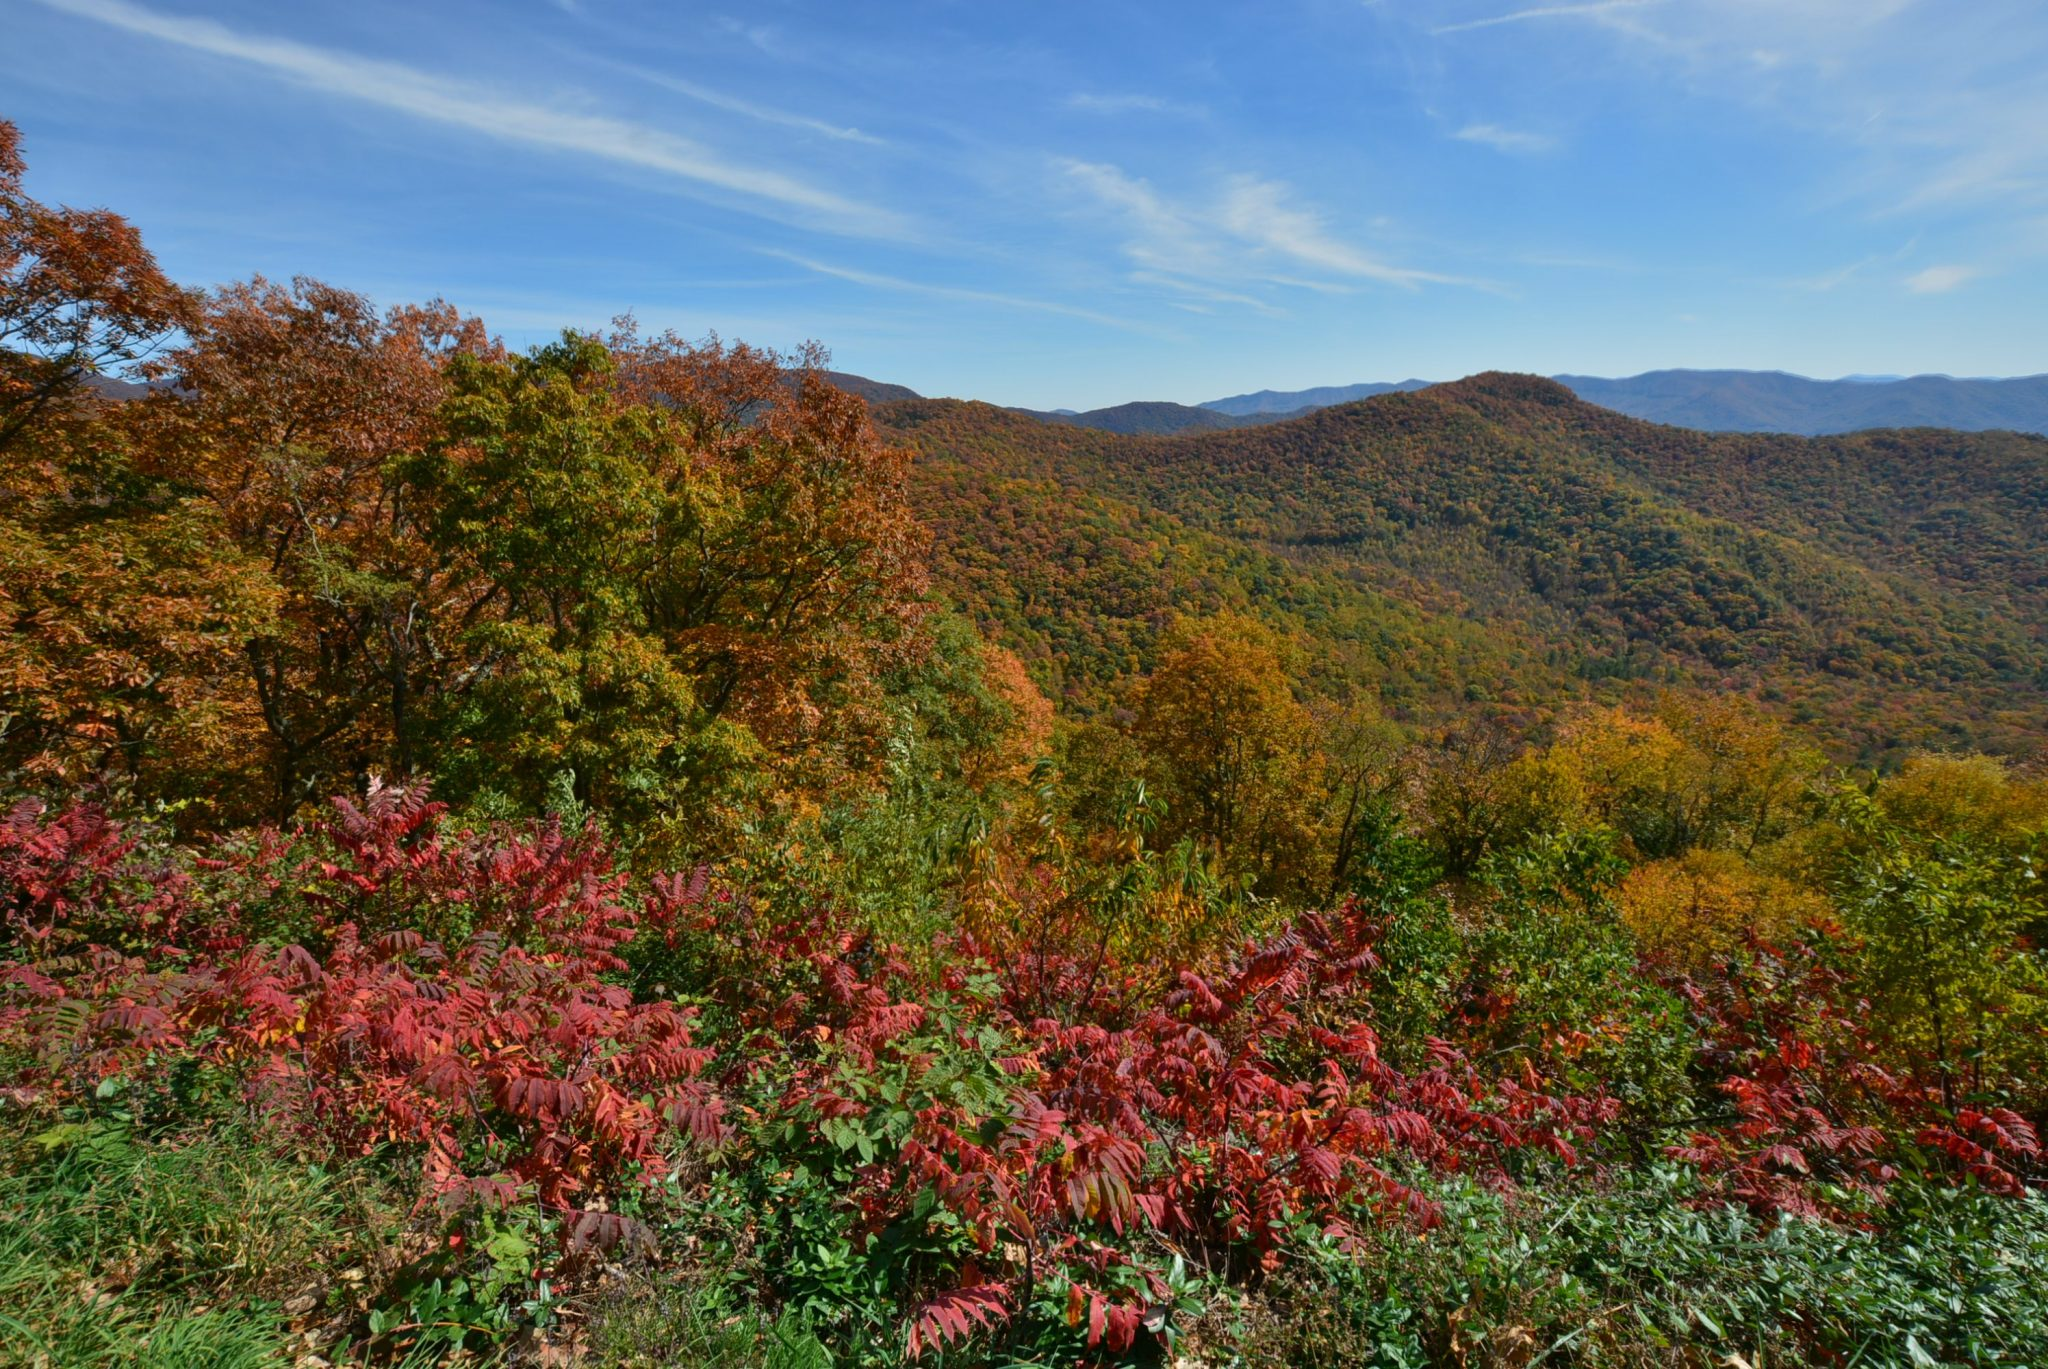 A long weekend in the mountains to see the fall foliage